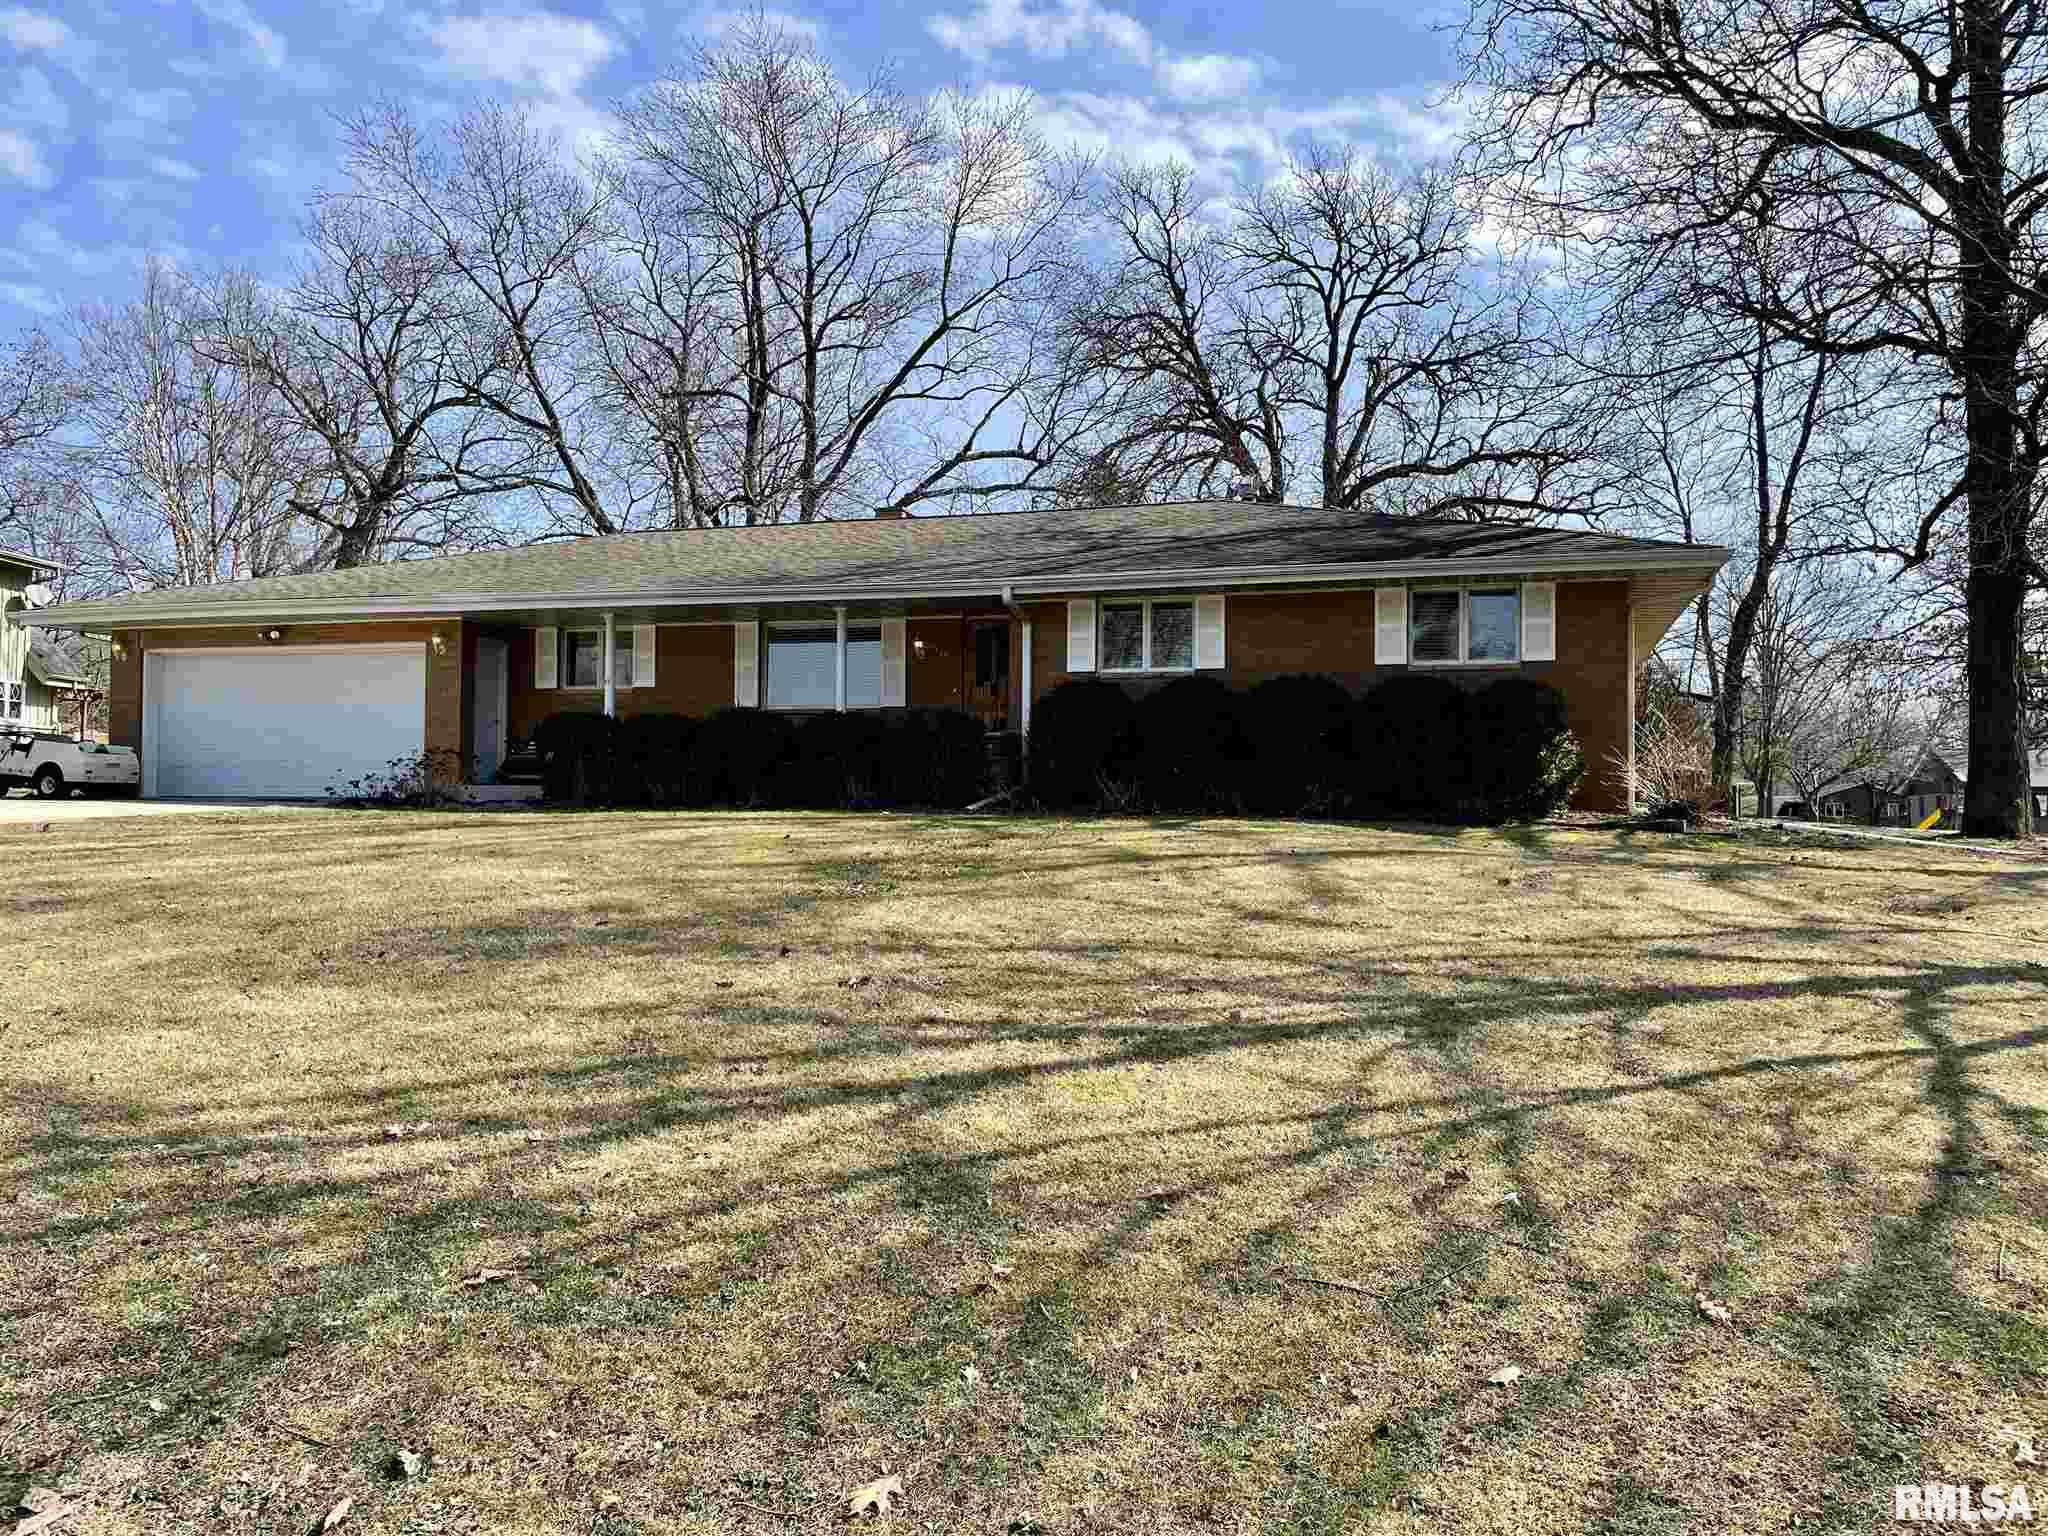 707 S HILLDALE Property Photo - Eureka, IL real estate listing